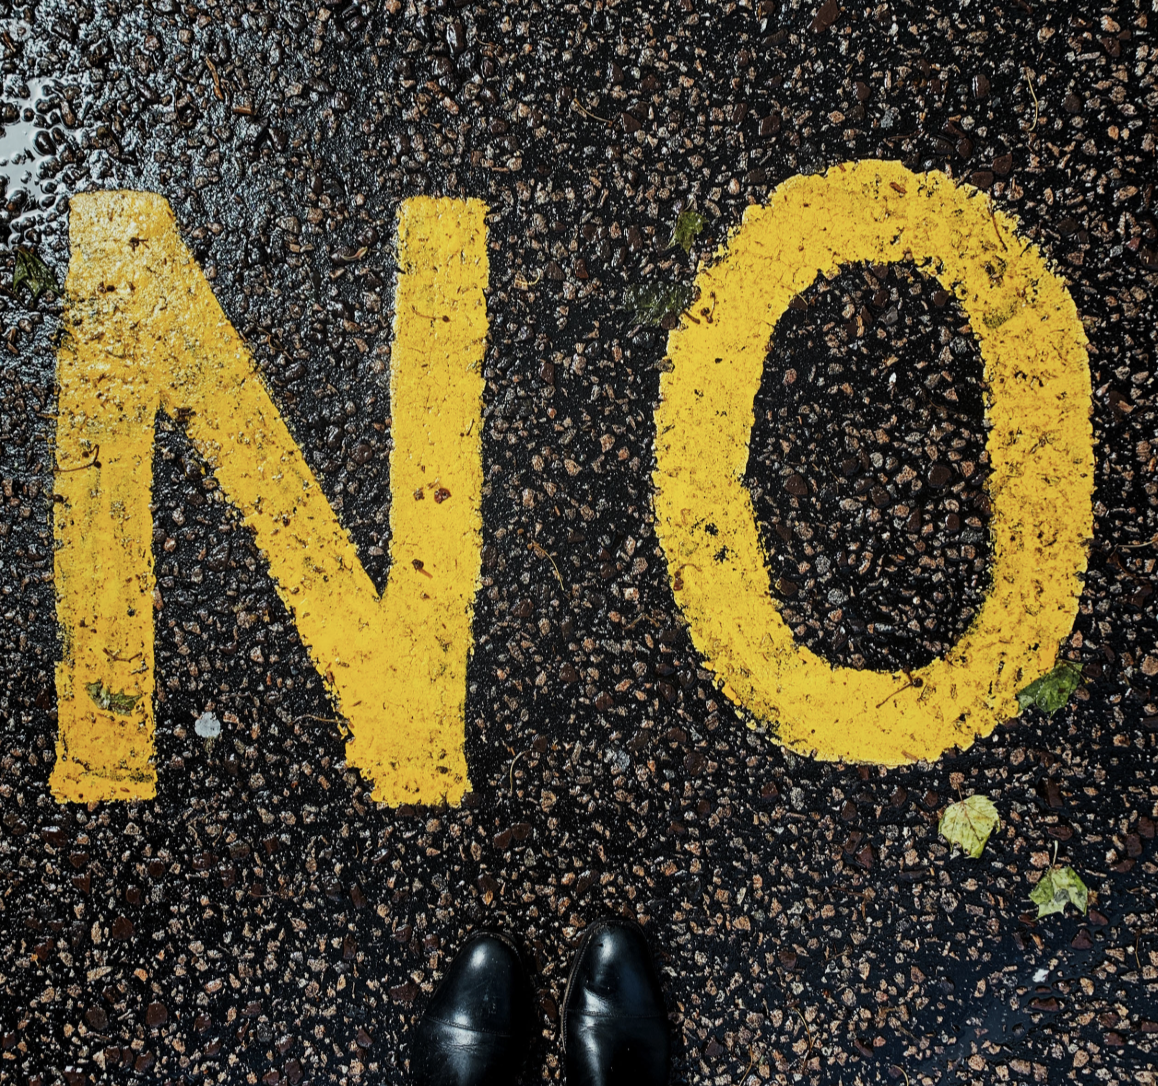 Maintain productivity by not being afraid to say no to projects